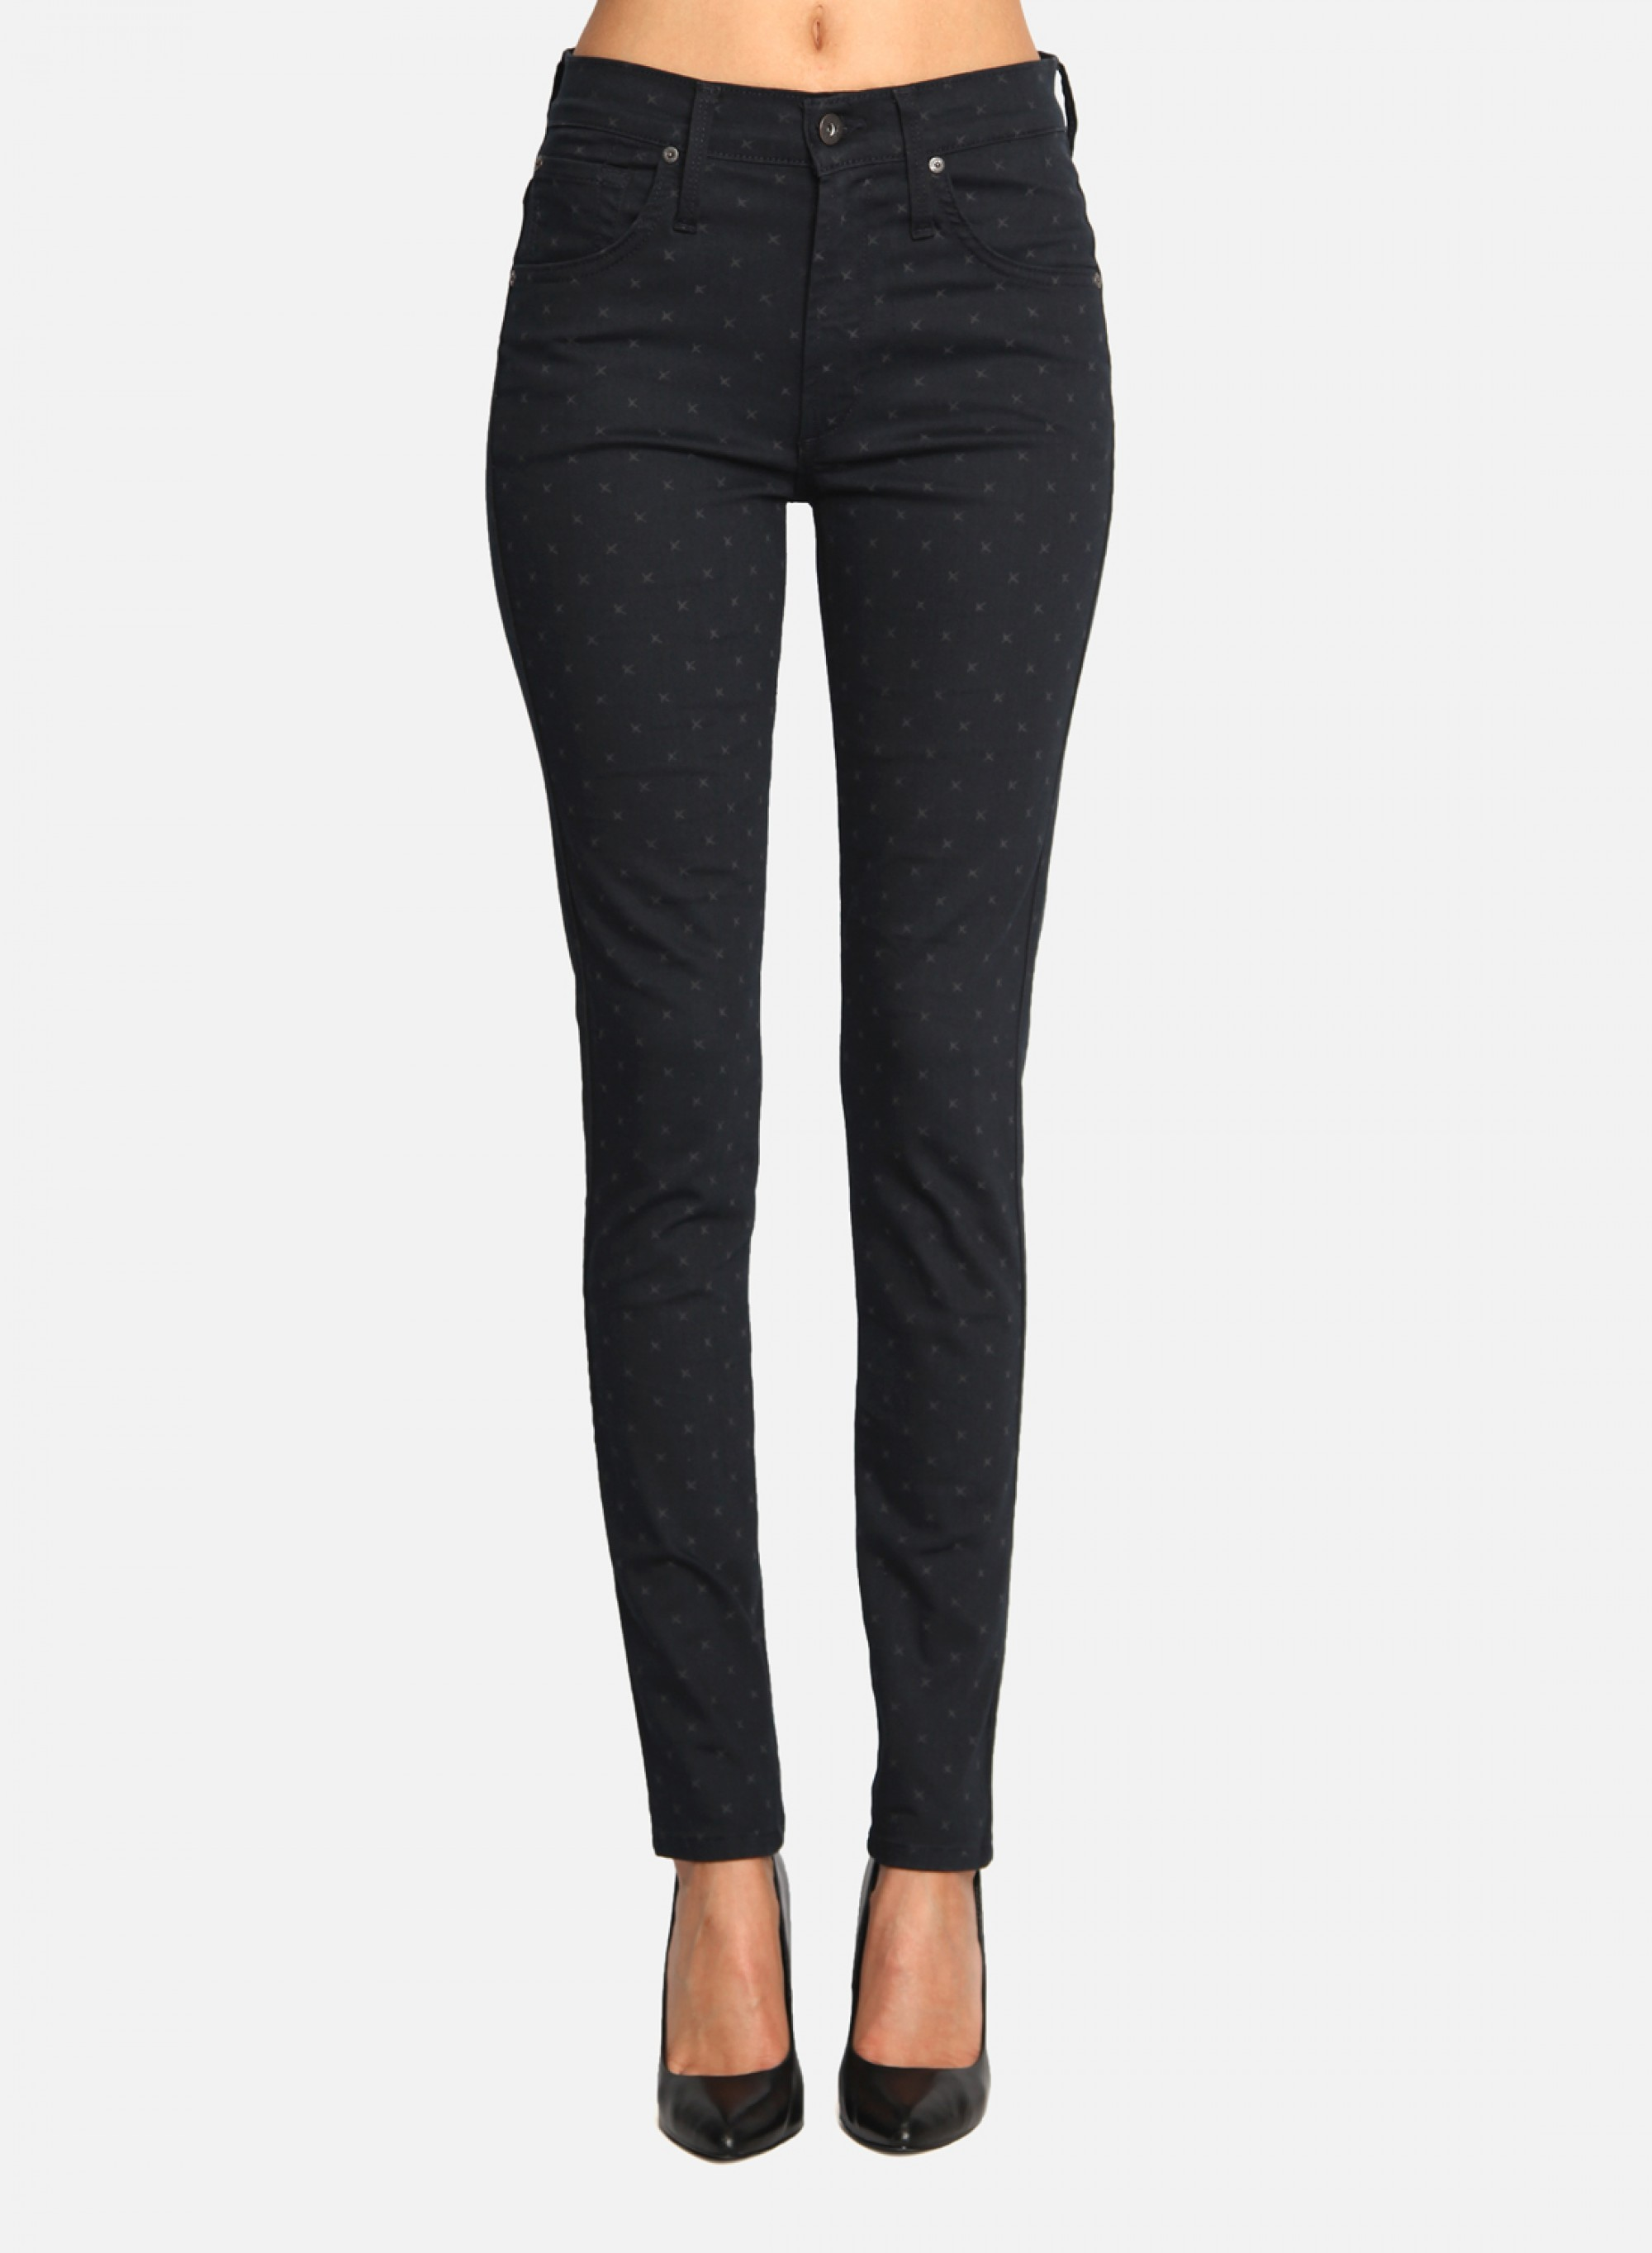 James Jeans Womens High Class Skinny Midnight Twinkle